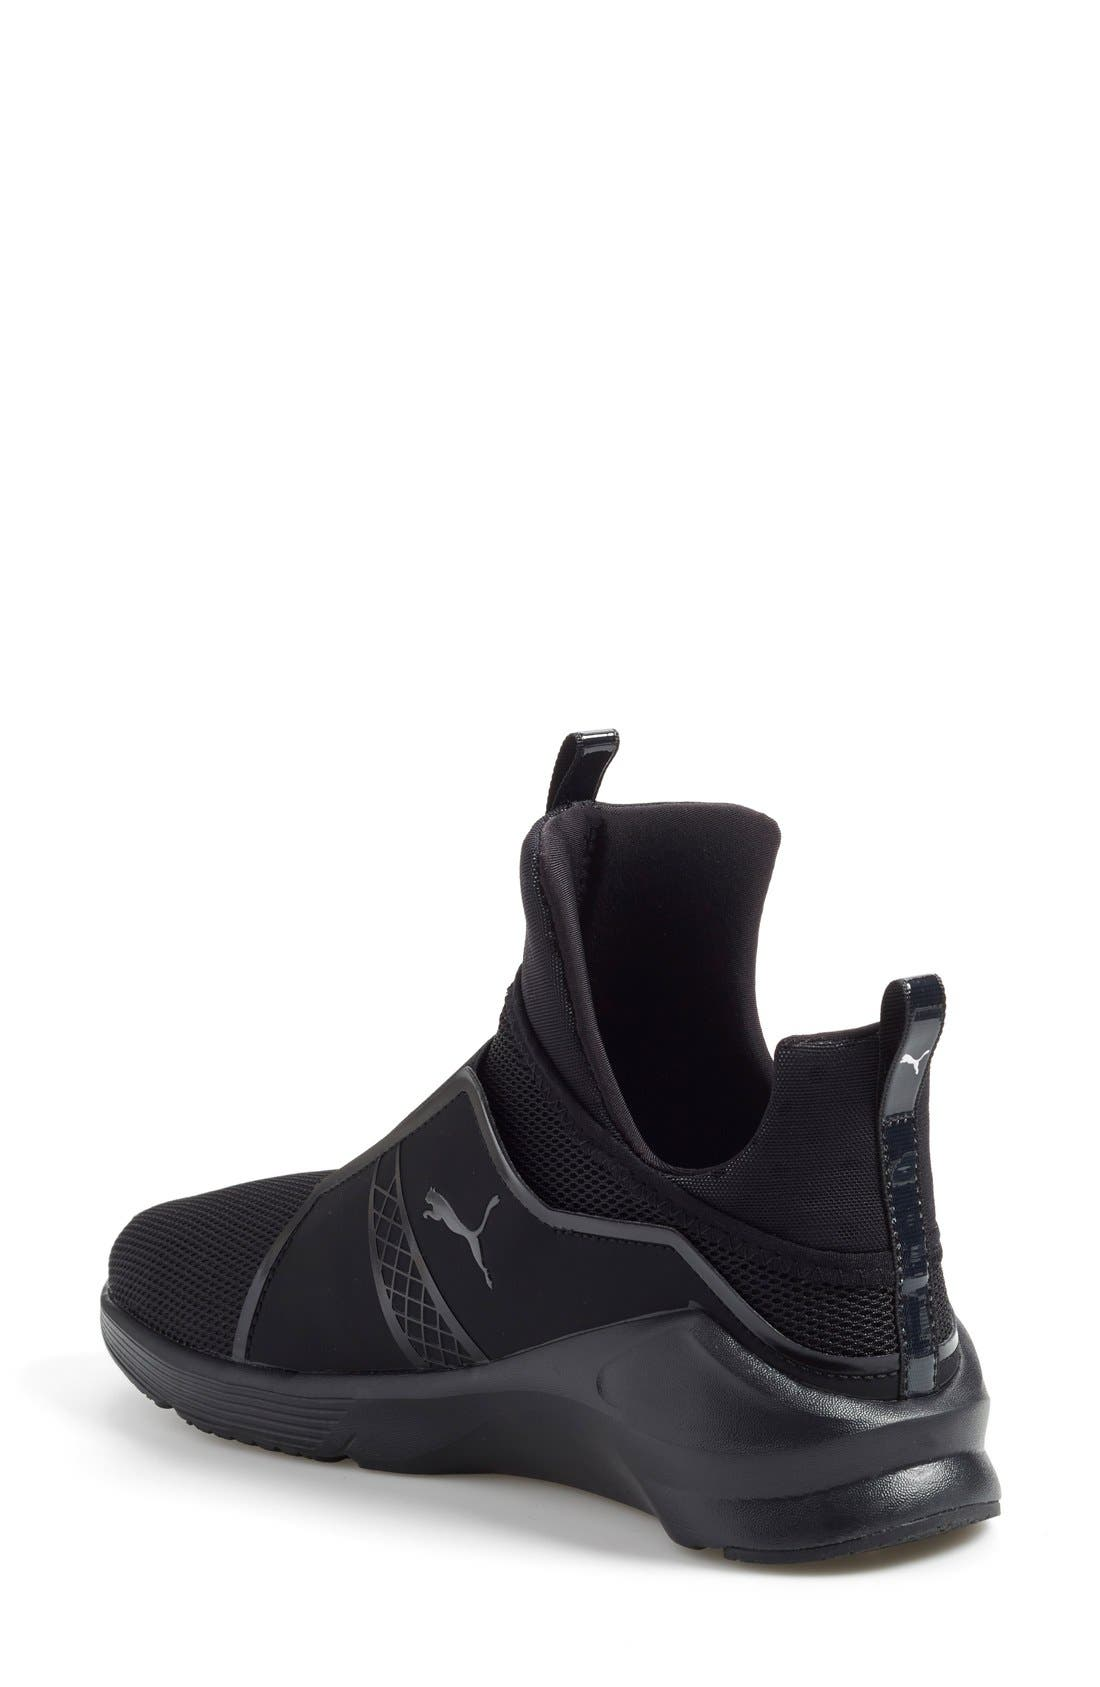 'Fierce Core' High Top Sneaker,                             Alternate thumbnail 2, color,                             001